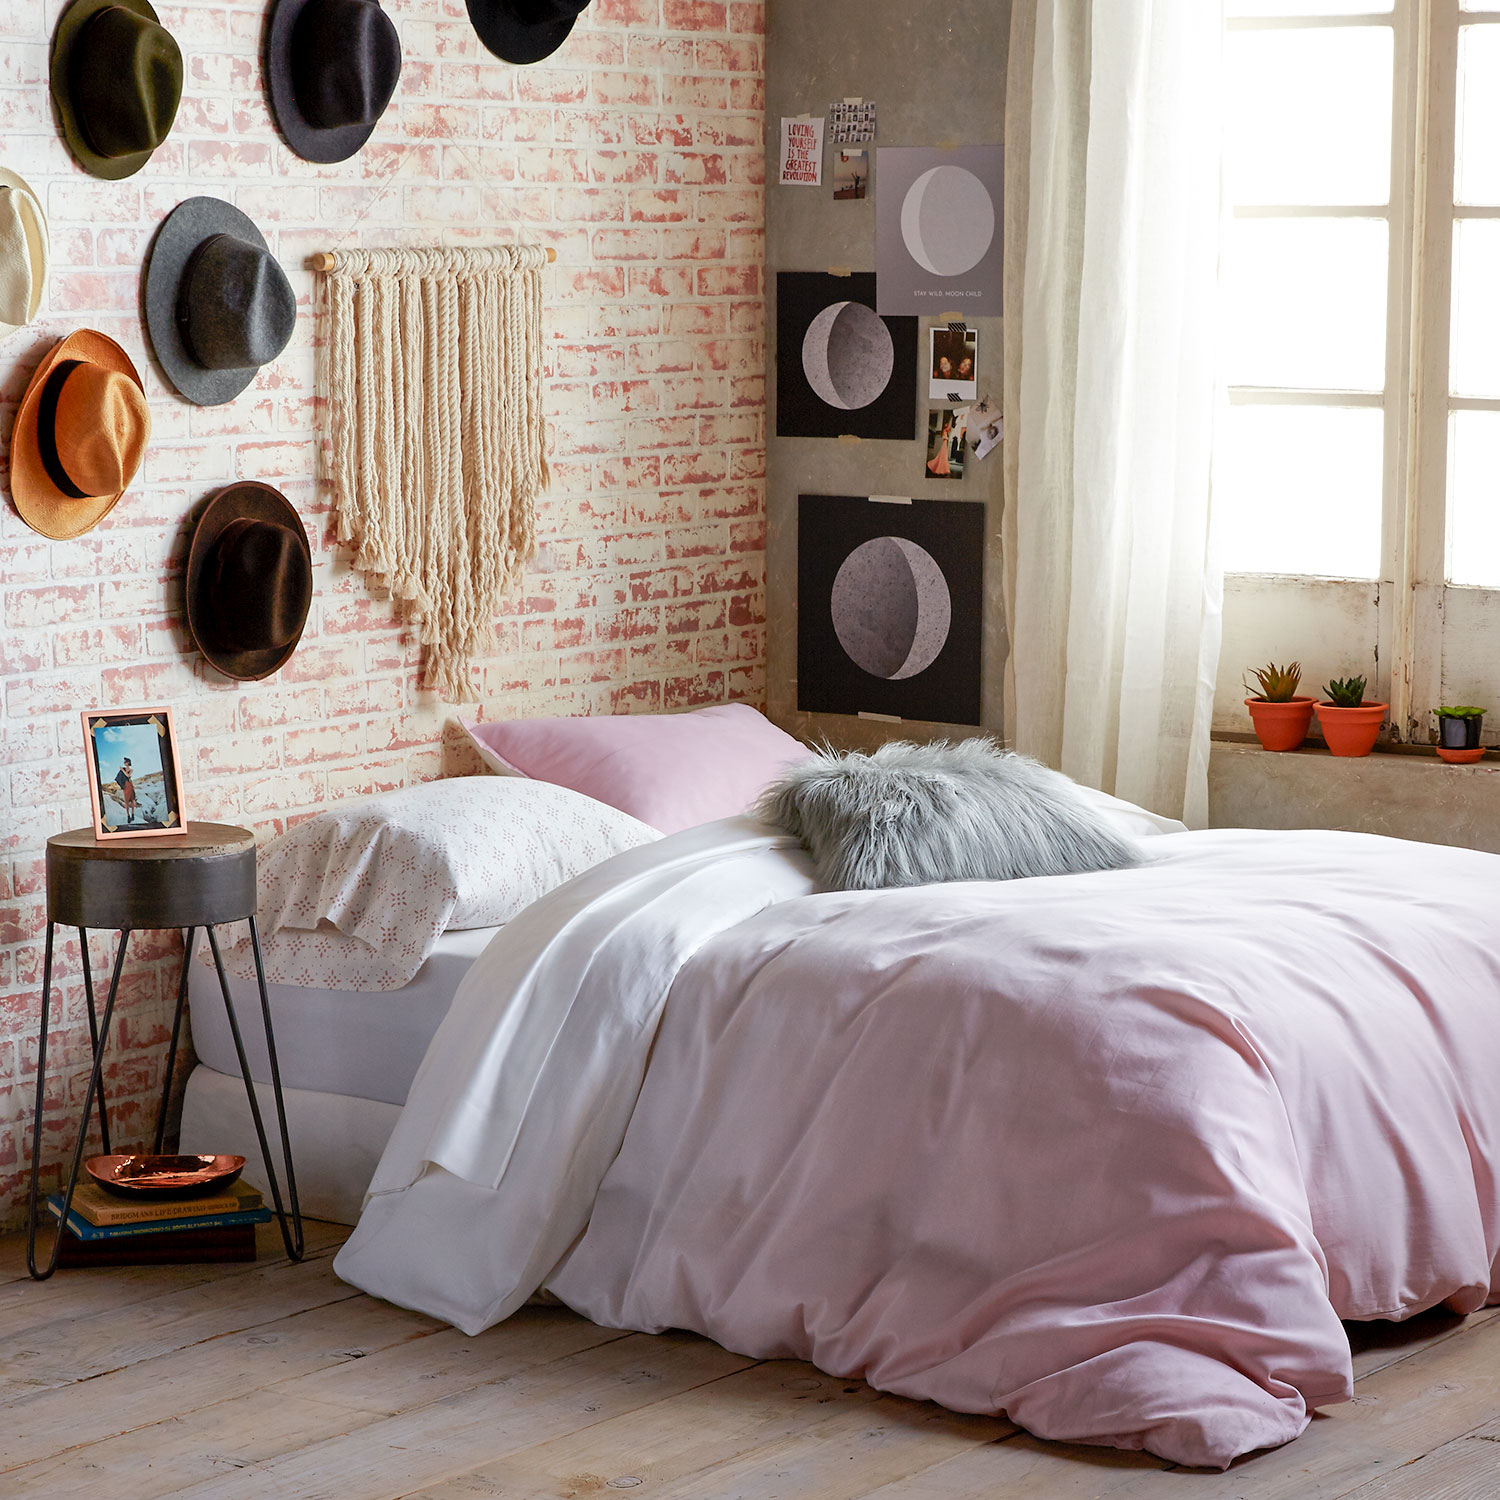 How To Style Your Bedroom With Millennial Pink – Dormify Blog